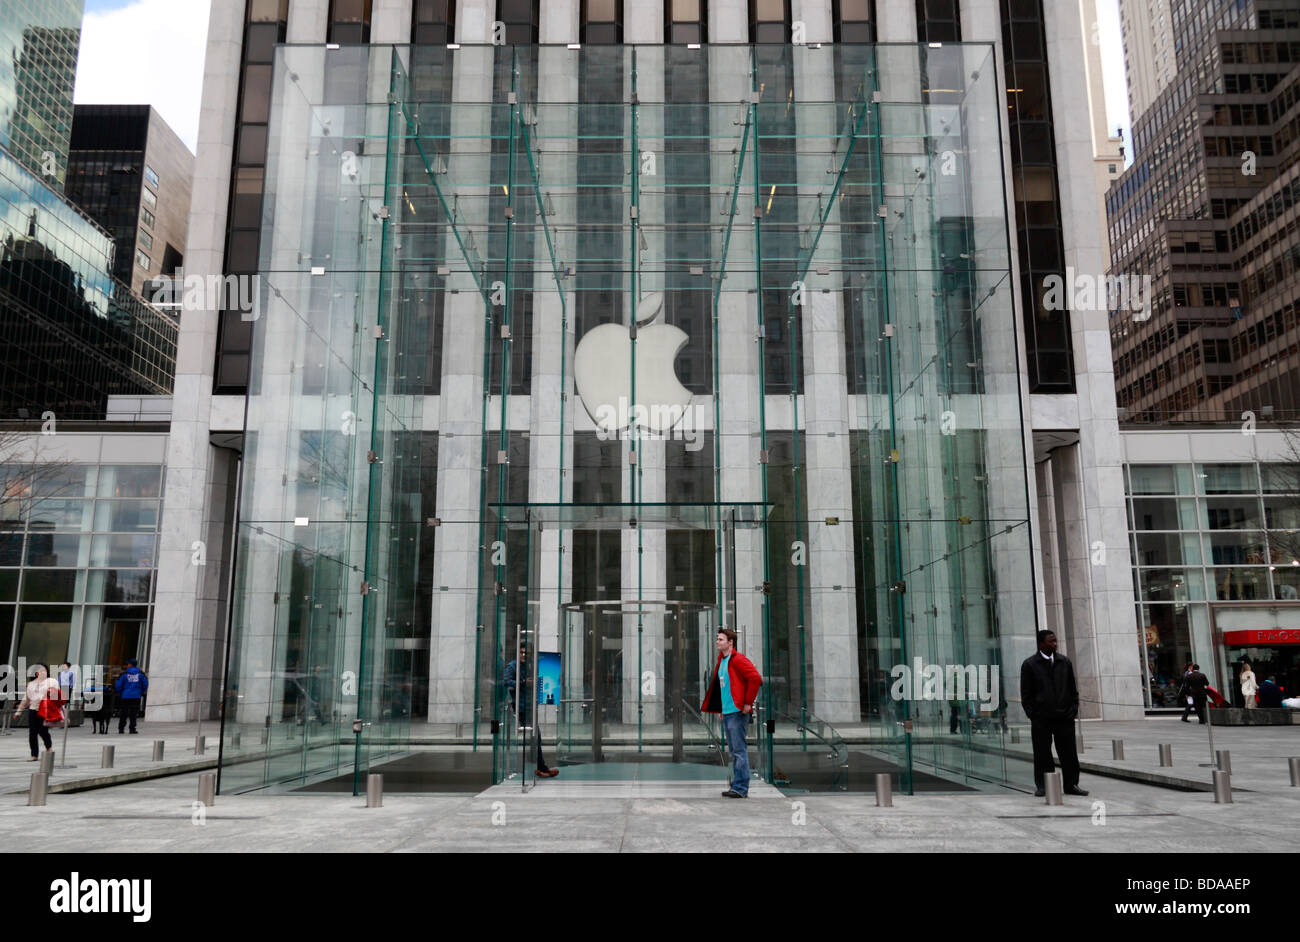 The glass cube entrance to the Apple Store on Fifth Avenue, Manhattan, New York, United States. Stock Photo